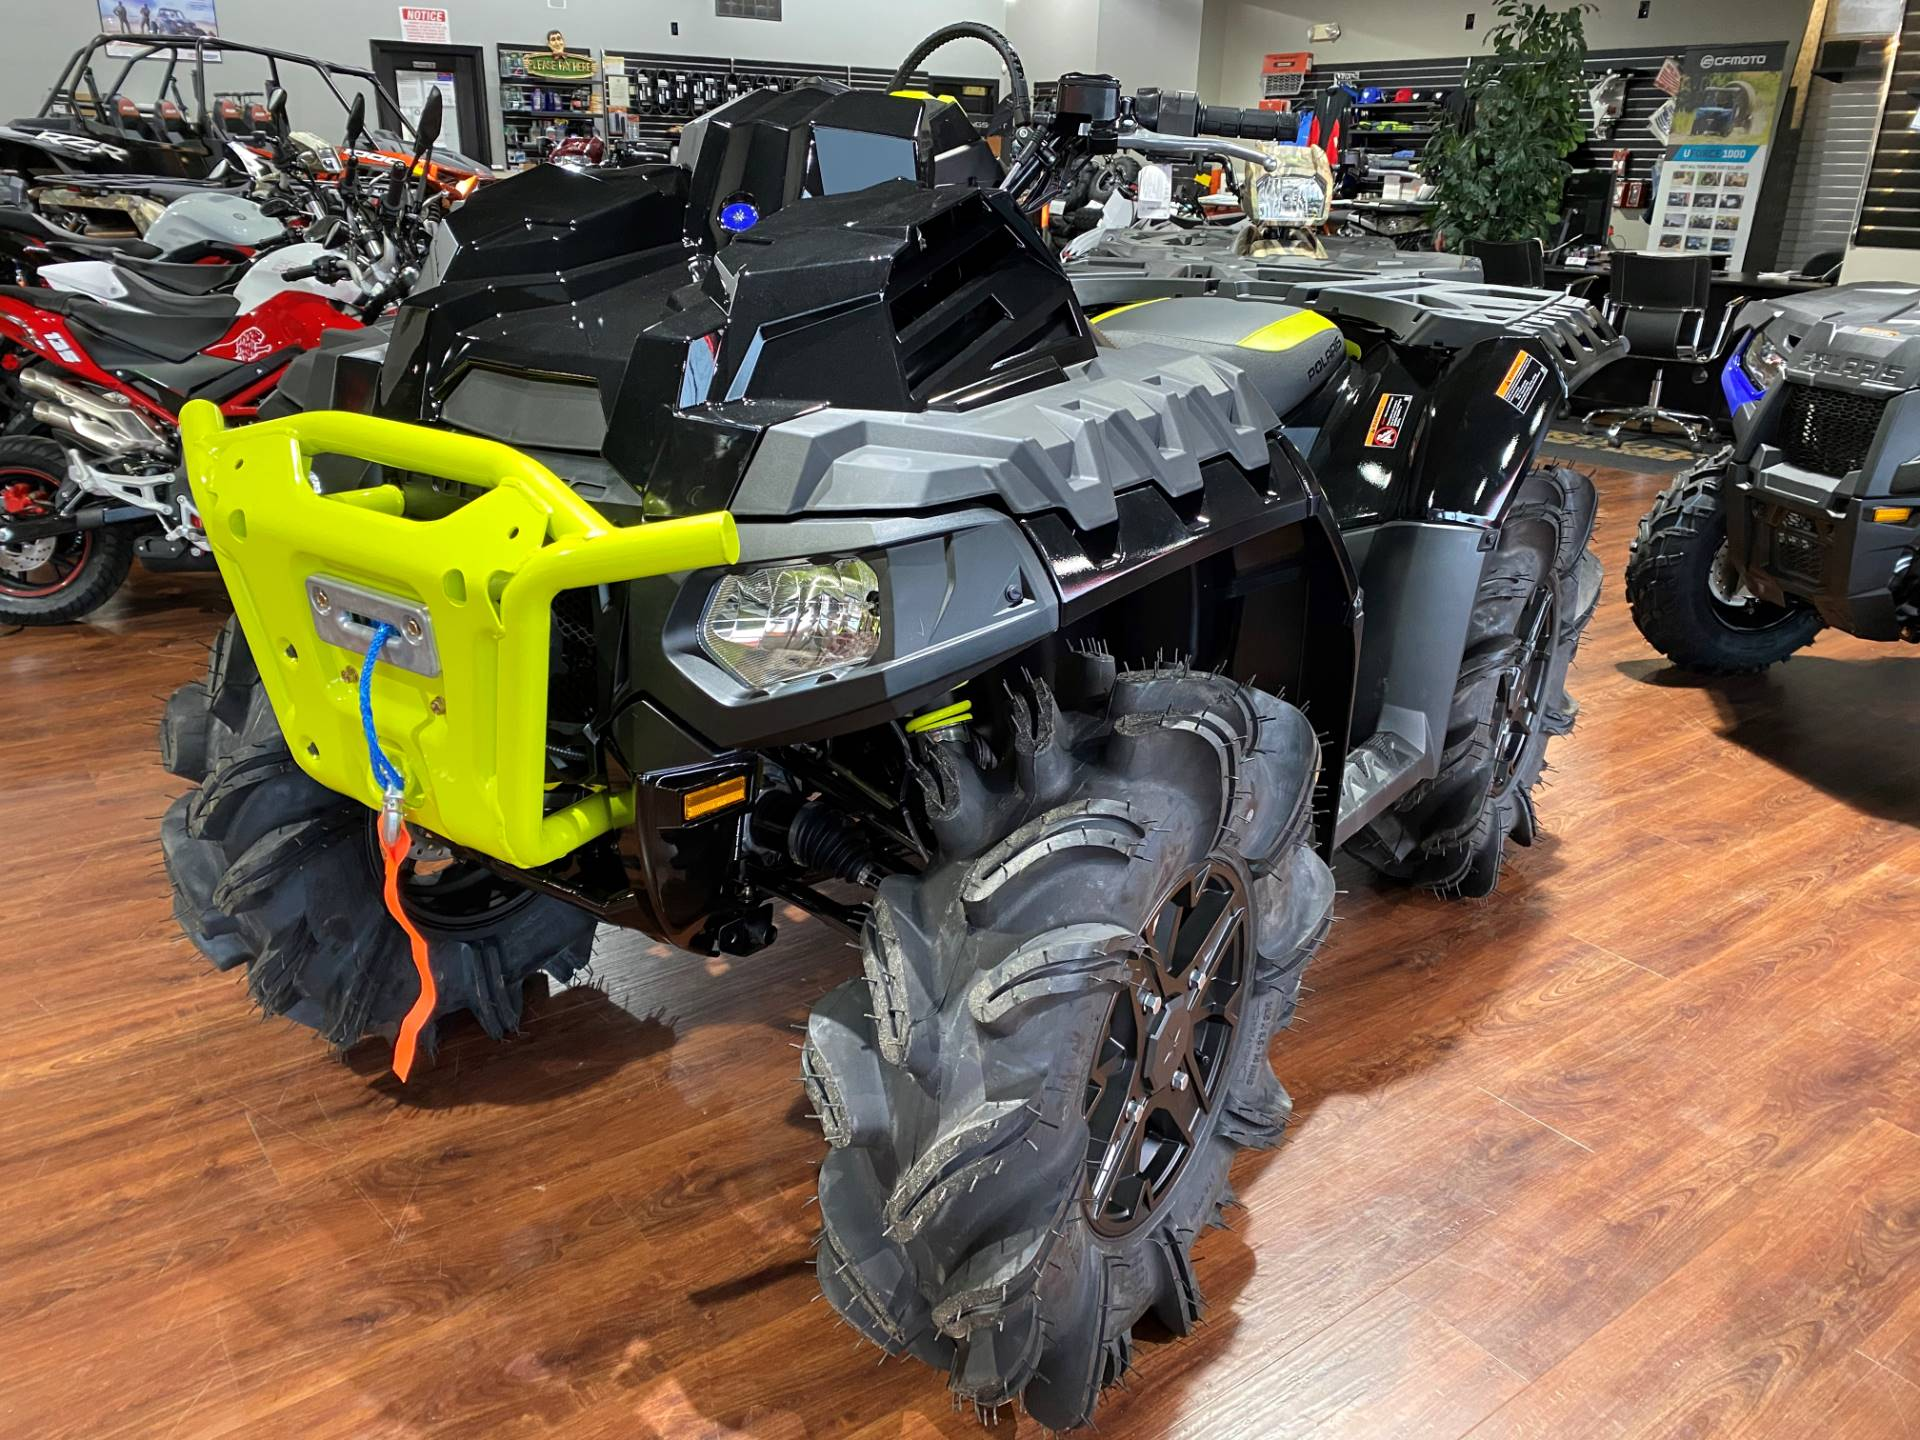 2020 Polaris Sportsman XP 1000 High Lifter Edition in Greer, South Carolina - Photo 2